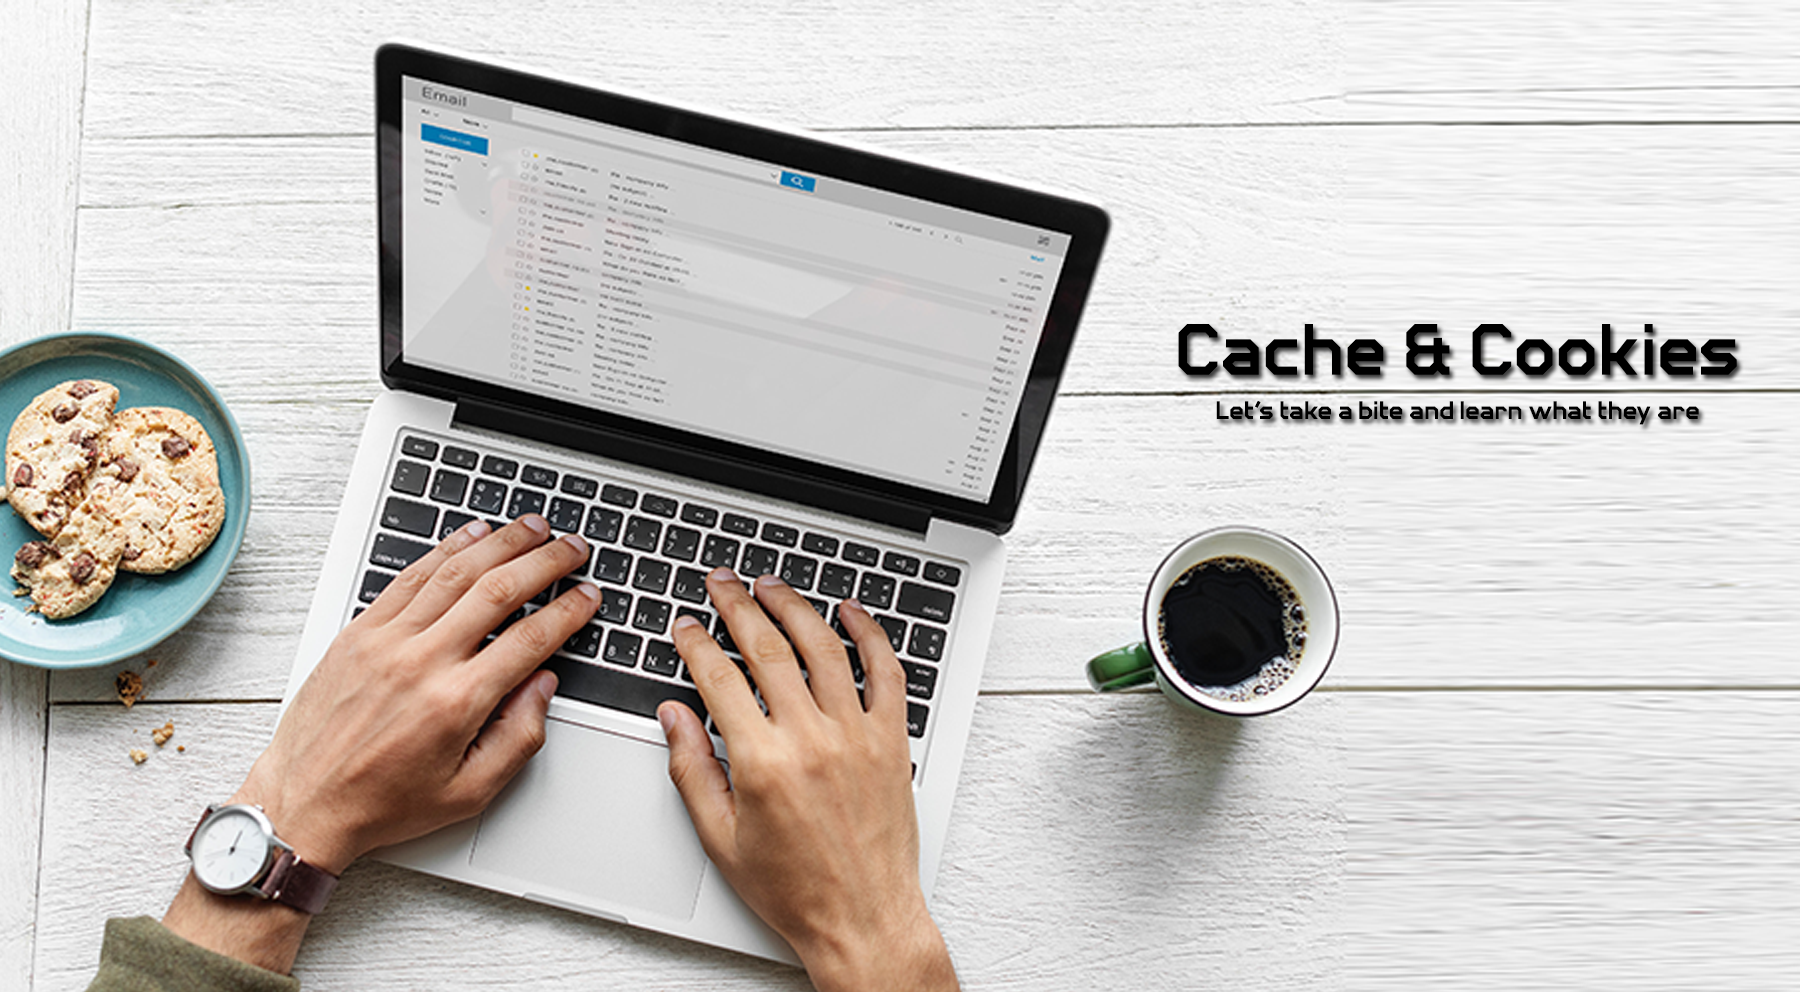 Caches and Cookie blog banner in web development